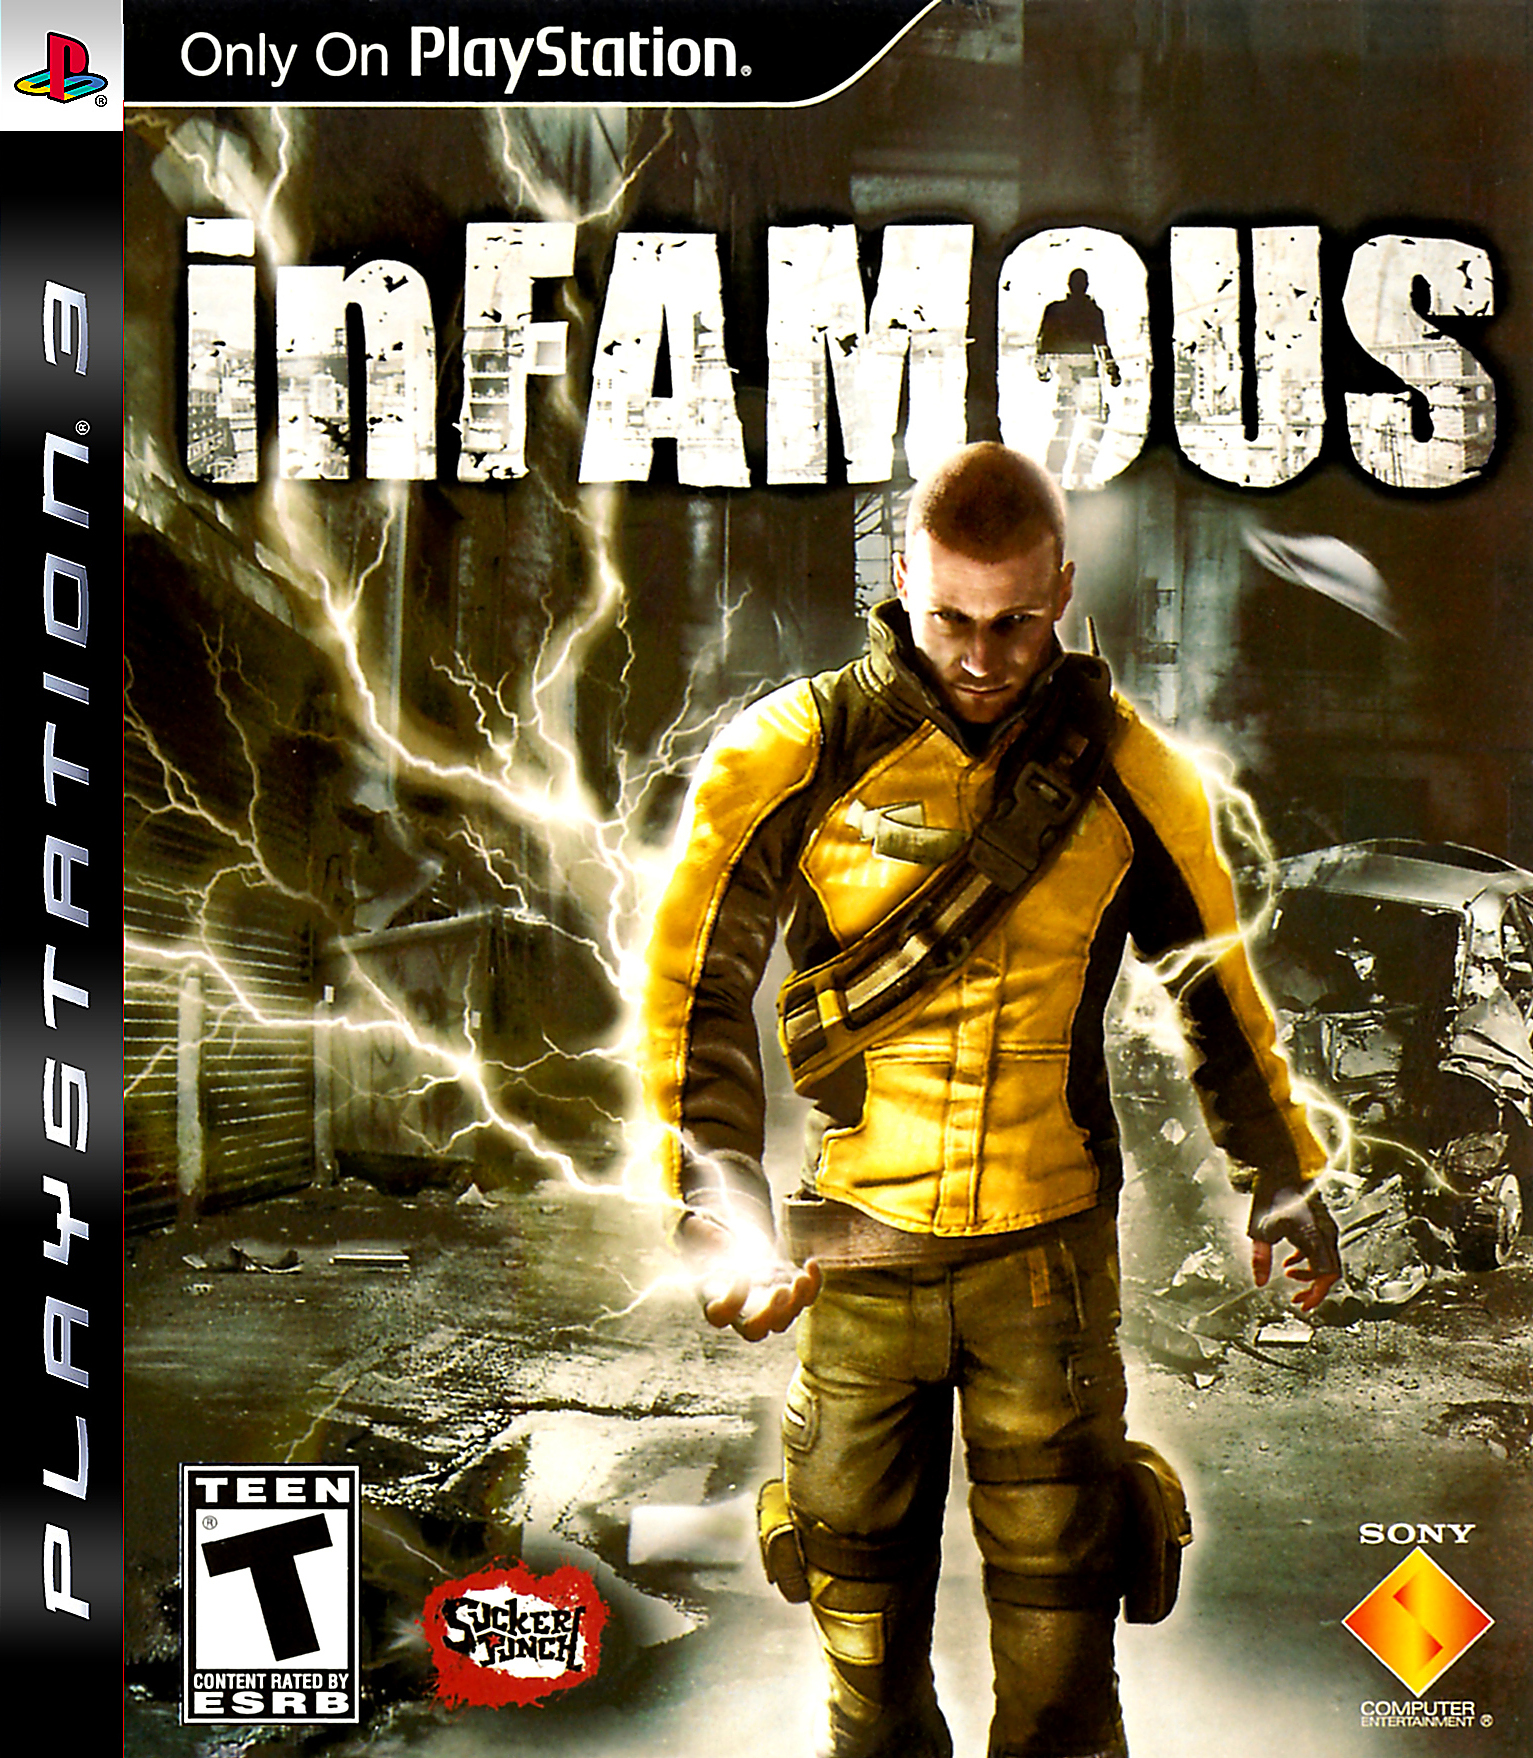 Infamous Infamous Map All Missions on uncharted 2 map, crash twinsanity map, everybody's gone to the rapture map, infamous second son map, forza 4 map, arkham city map, bound by flame map, infamous first light map, the witcher 3: wild hunt map, mortal kombat 2 map, crash bandicoot 2 map, grim dawn map, grandia 2 map, just cause 2 map, pac-man world 2 map, batman: arkham knight map, prototype 3 map, prototype 2 map, infamous festival of blood mary's teachings, grand theft auto: san andreas map,